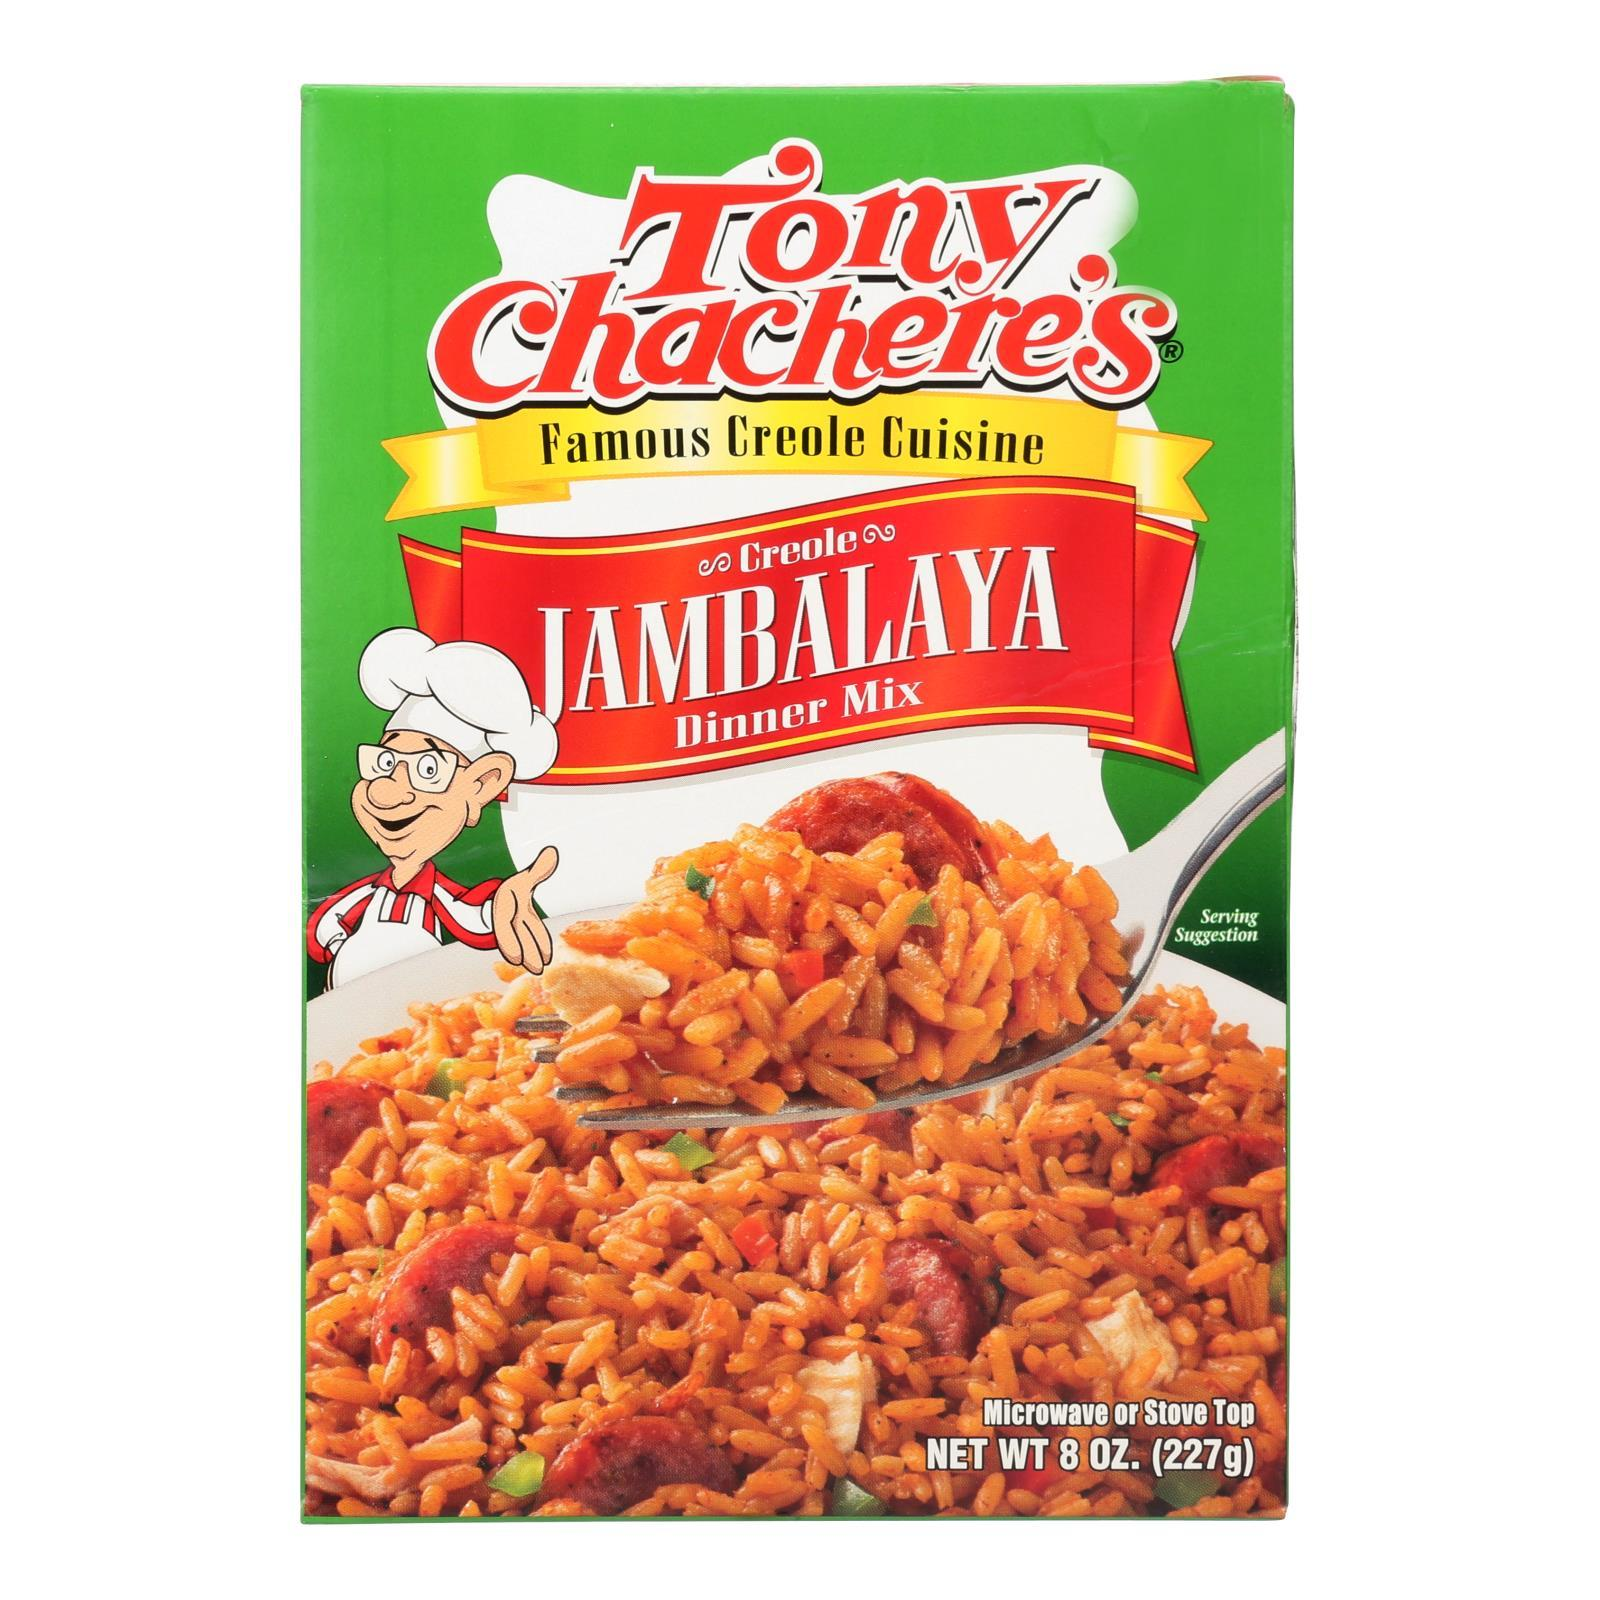 Tony Chachere's Famous Creole Cuisine Creole Jambalaya Dinner Mix - Case Of 12 - 8 Oz - BeeGreen